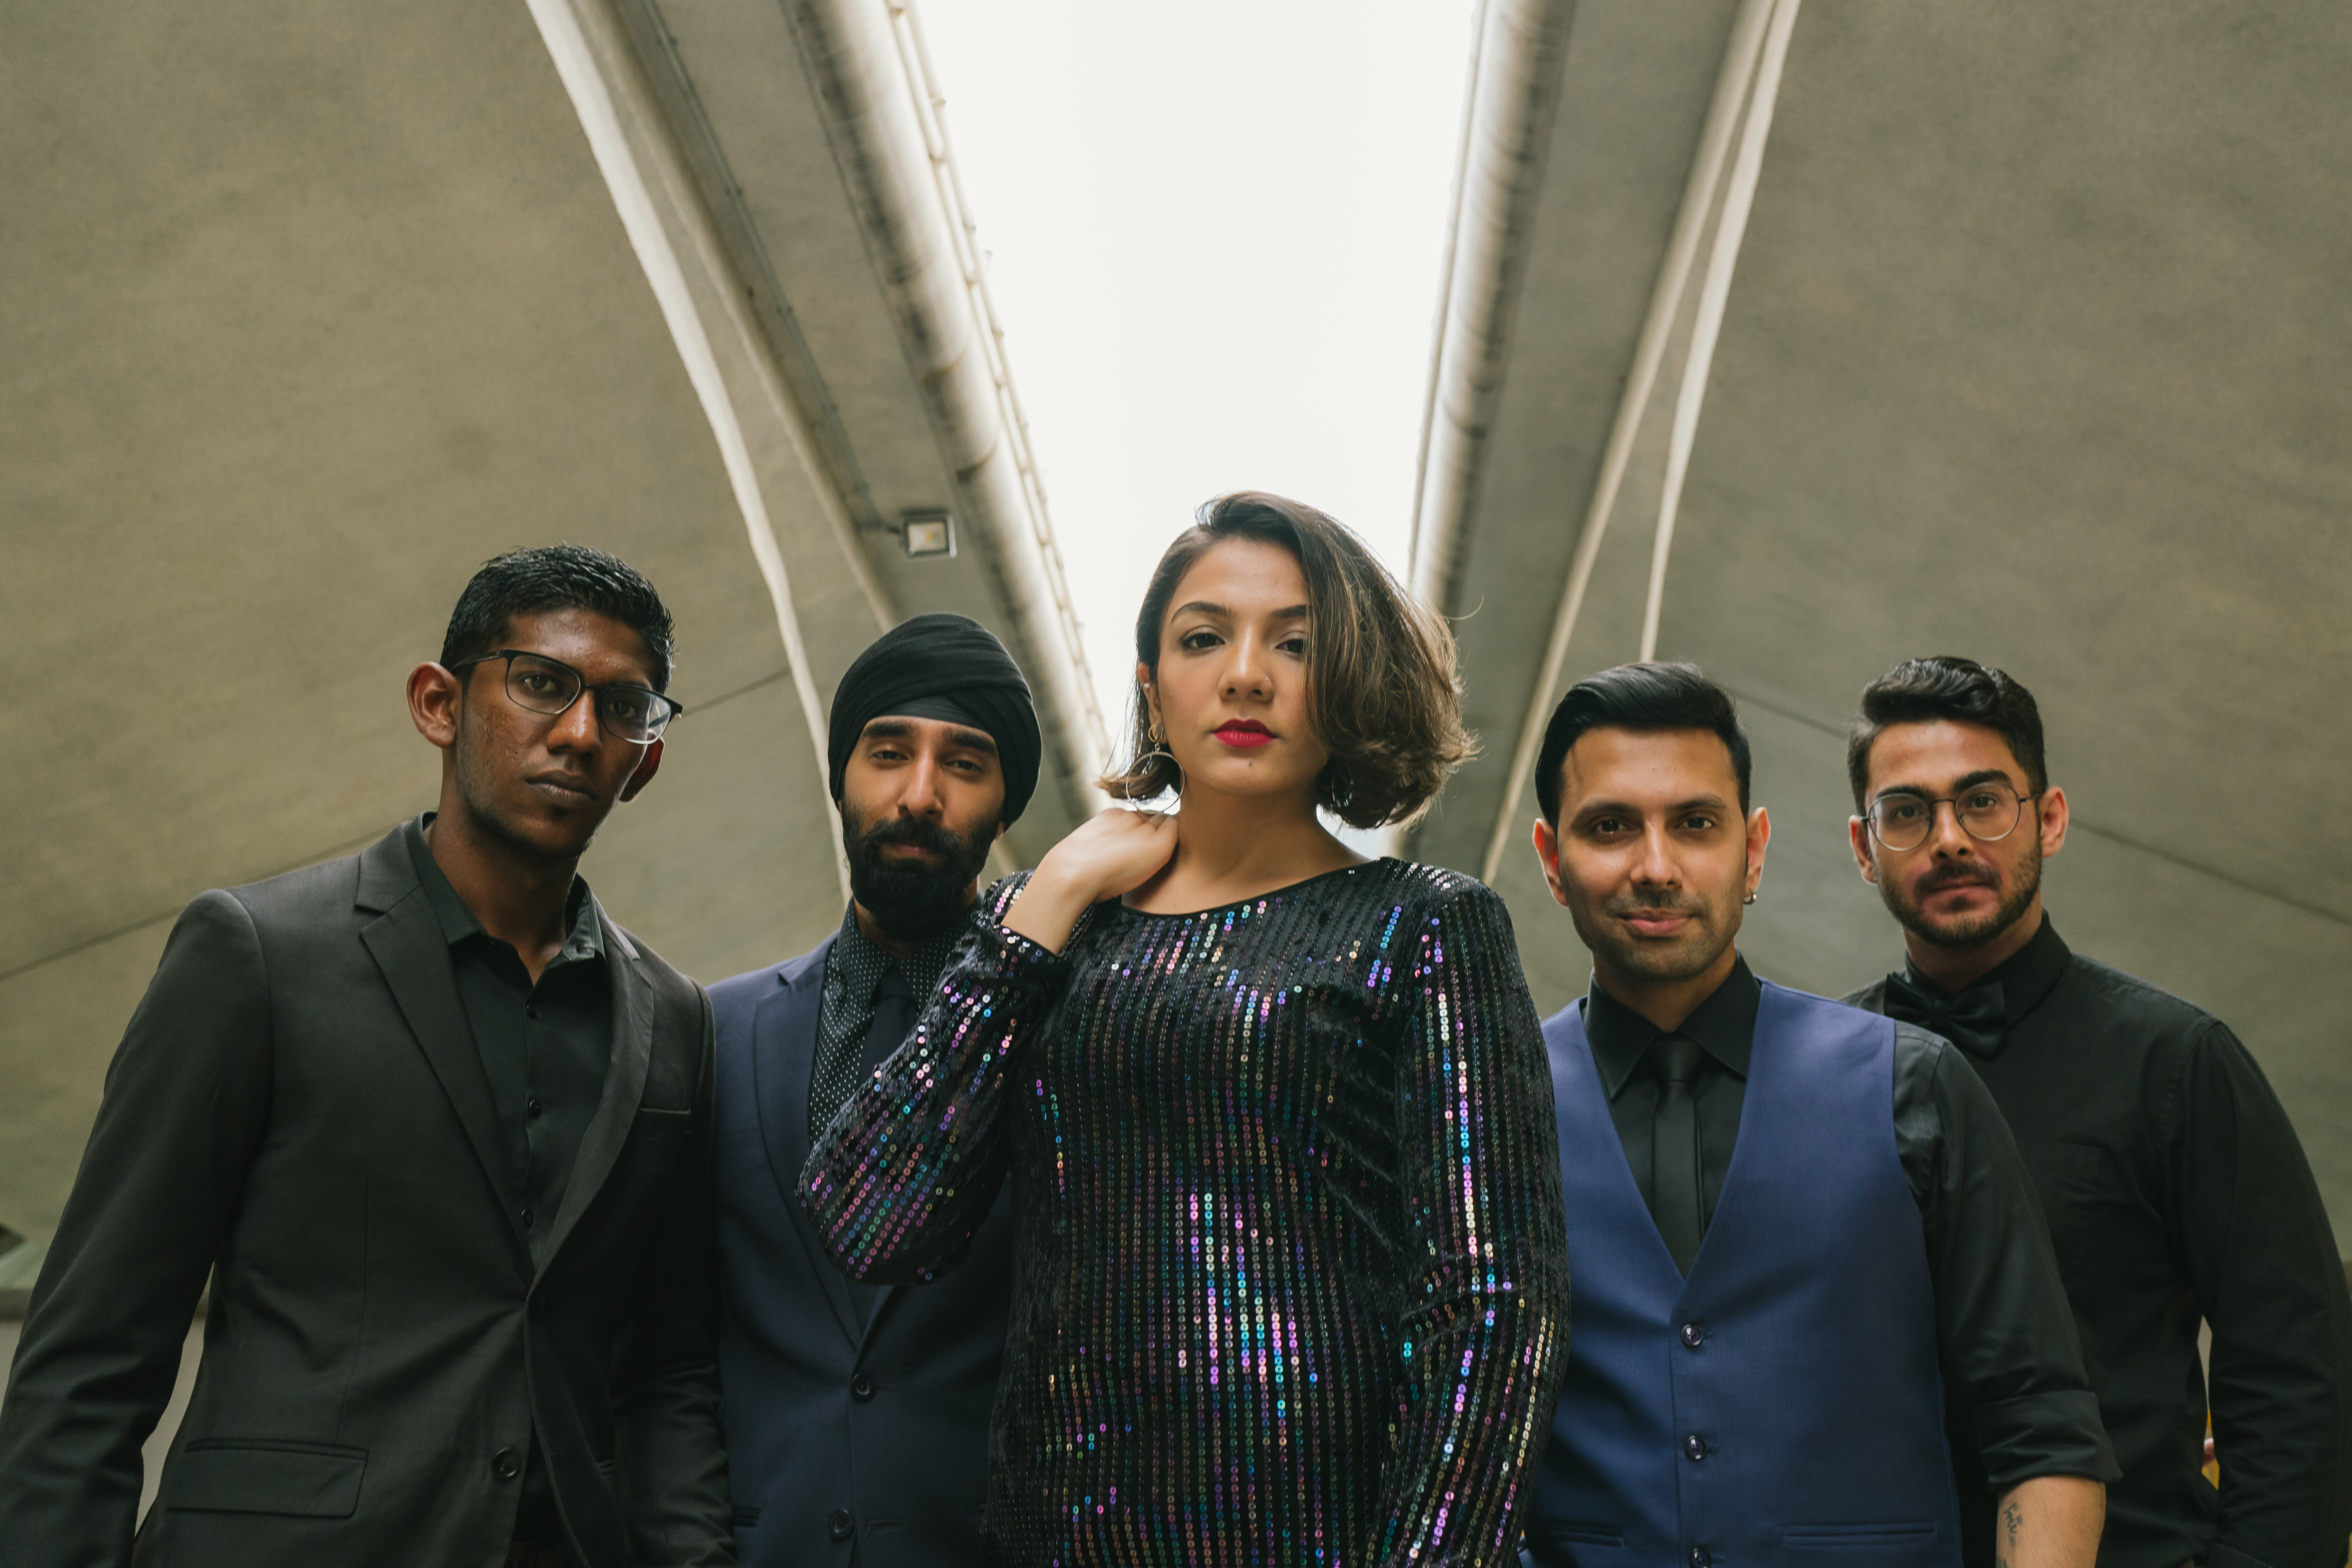 Led by Harsha Channa, The Band Walle crosses boundaries set out in both Indian and Western music cultures, painting a unique soundscape for the Singapore music scene.